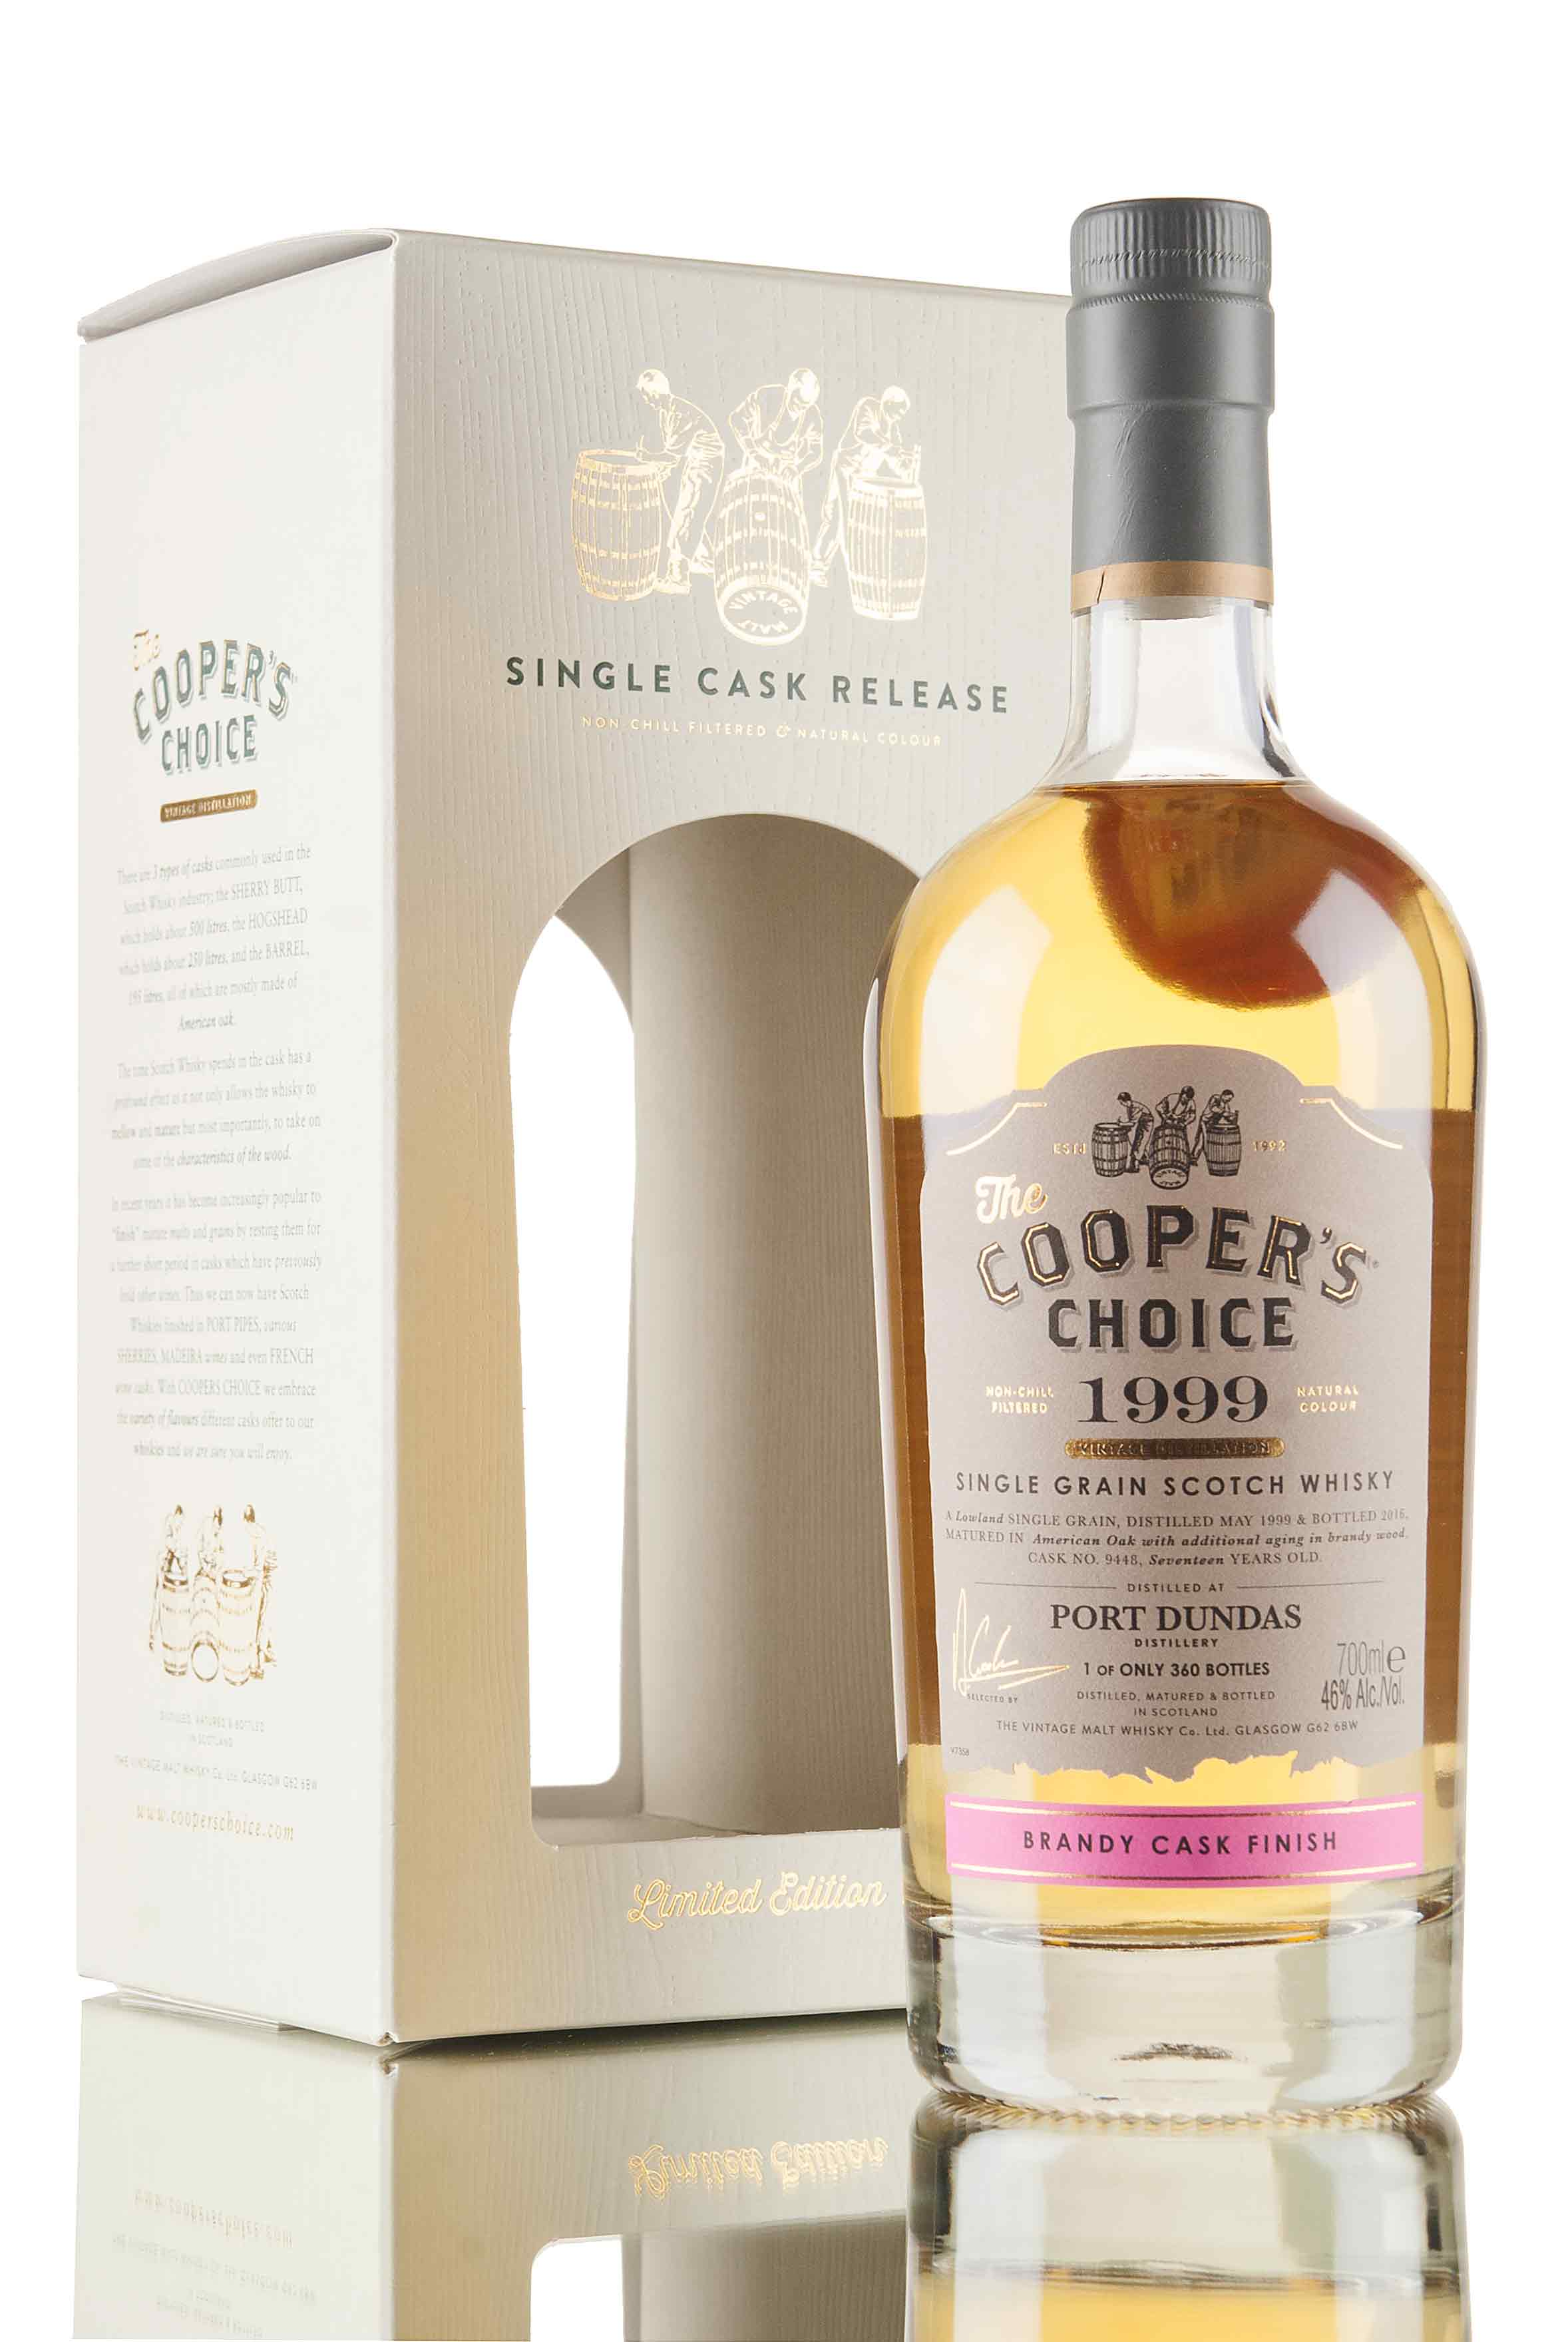 Port Dundas 17 Year Old - 1999 / Cask 9448 / Cooper's Choice